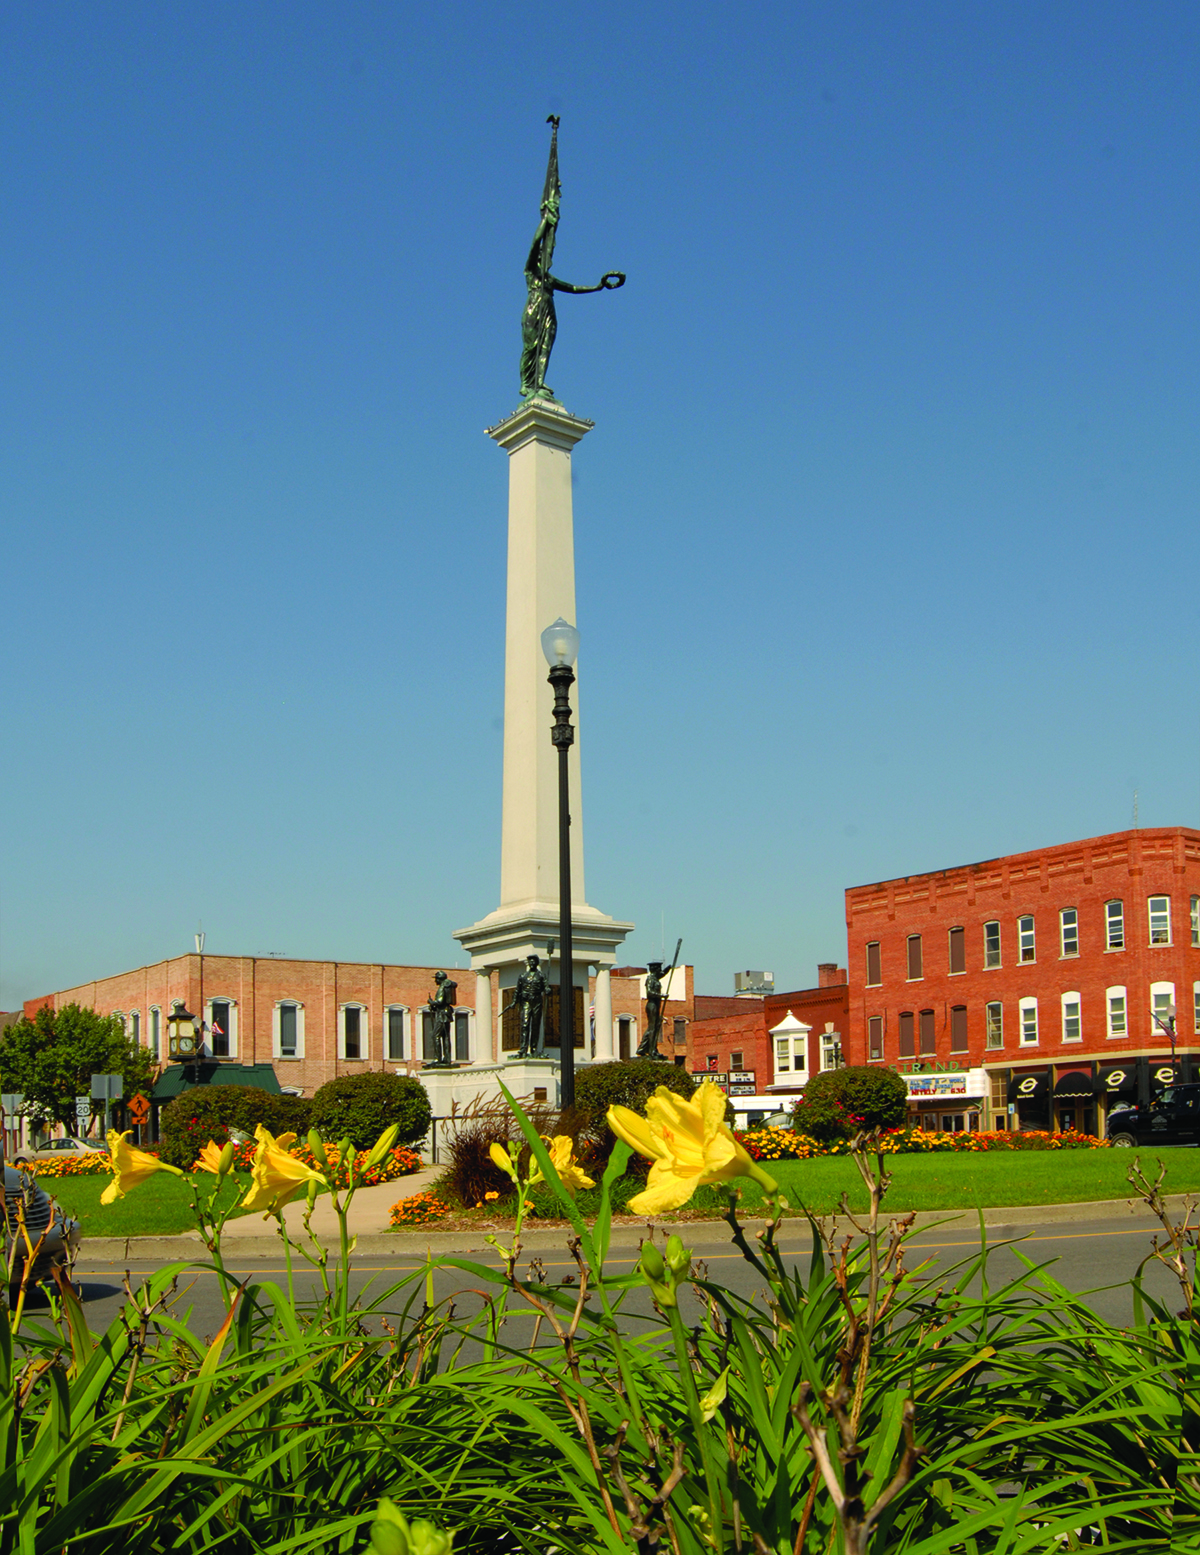 Downtown Angola - The Mound